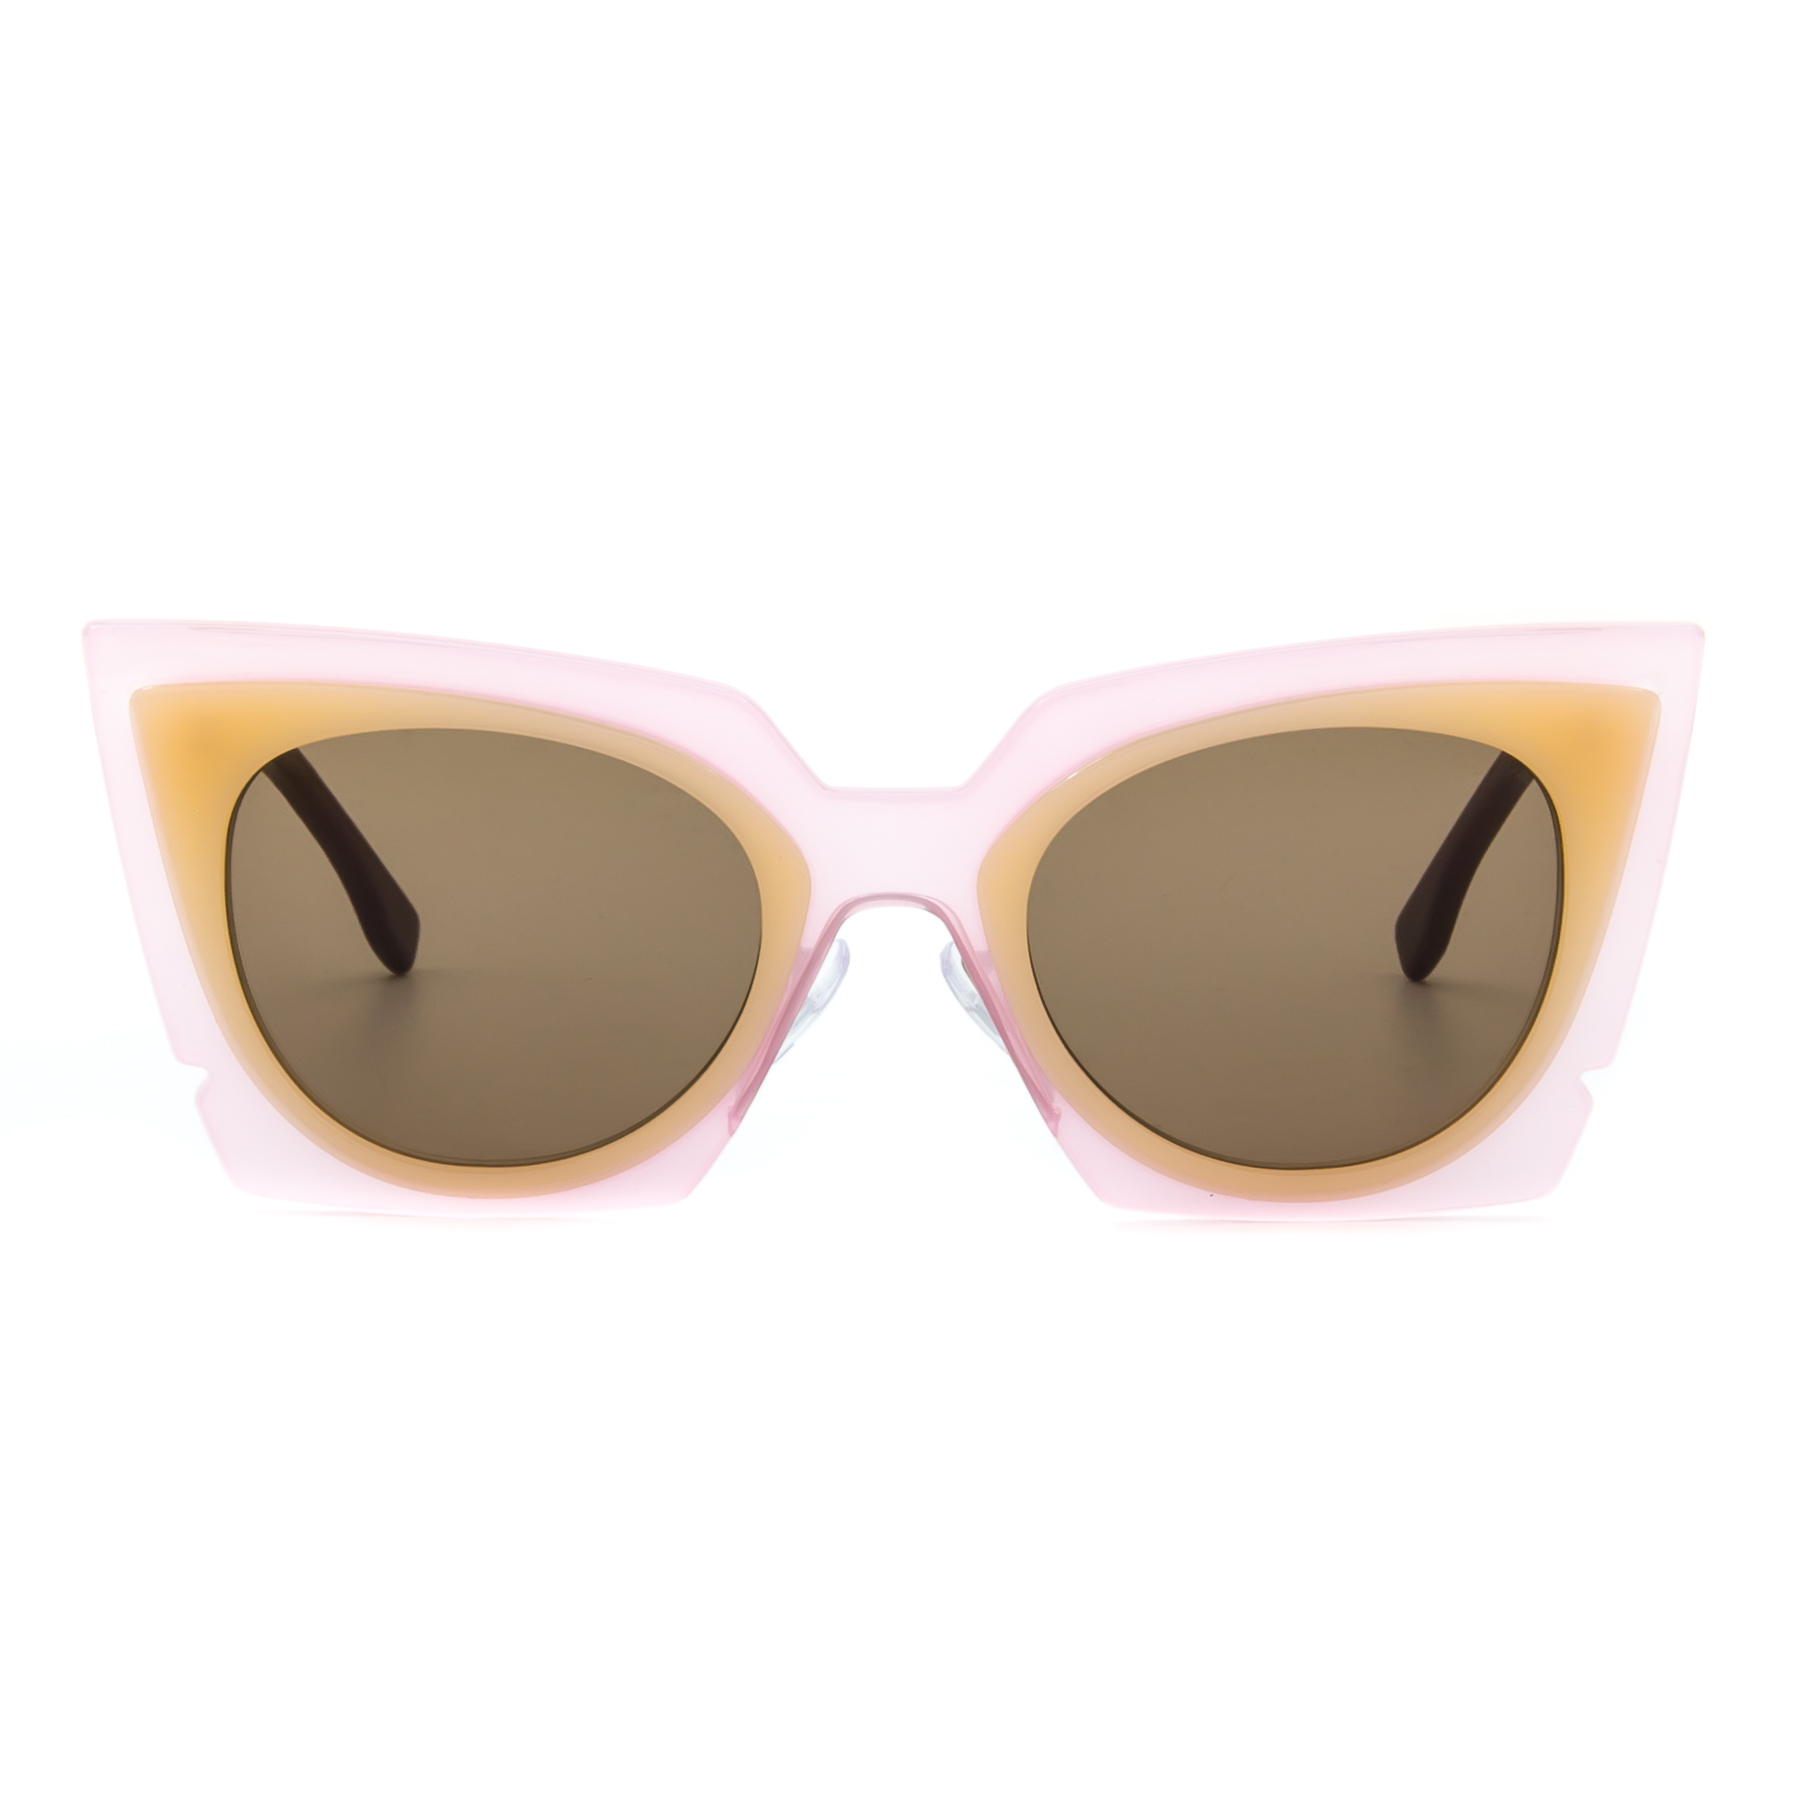 90b2d2b0a2 Fendi 0117 S Orchid Cat Eye Sunglasses LAQUT Pink   Peach   Tobacco Brown  Lenses